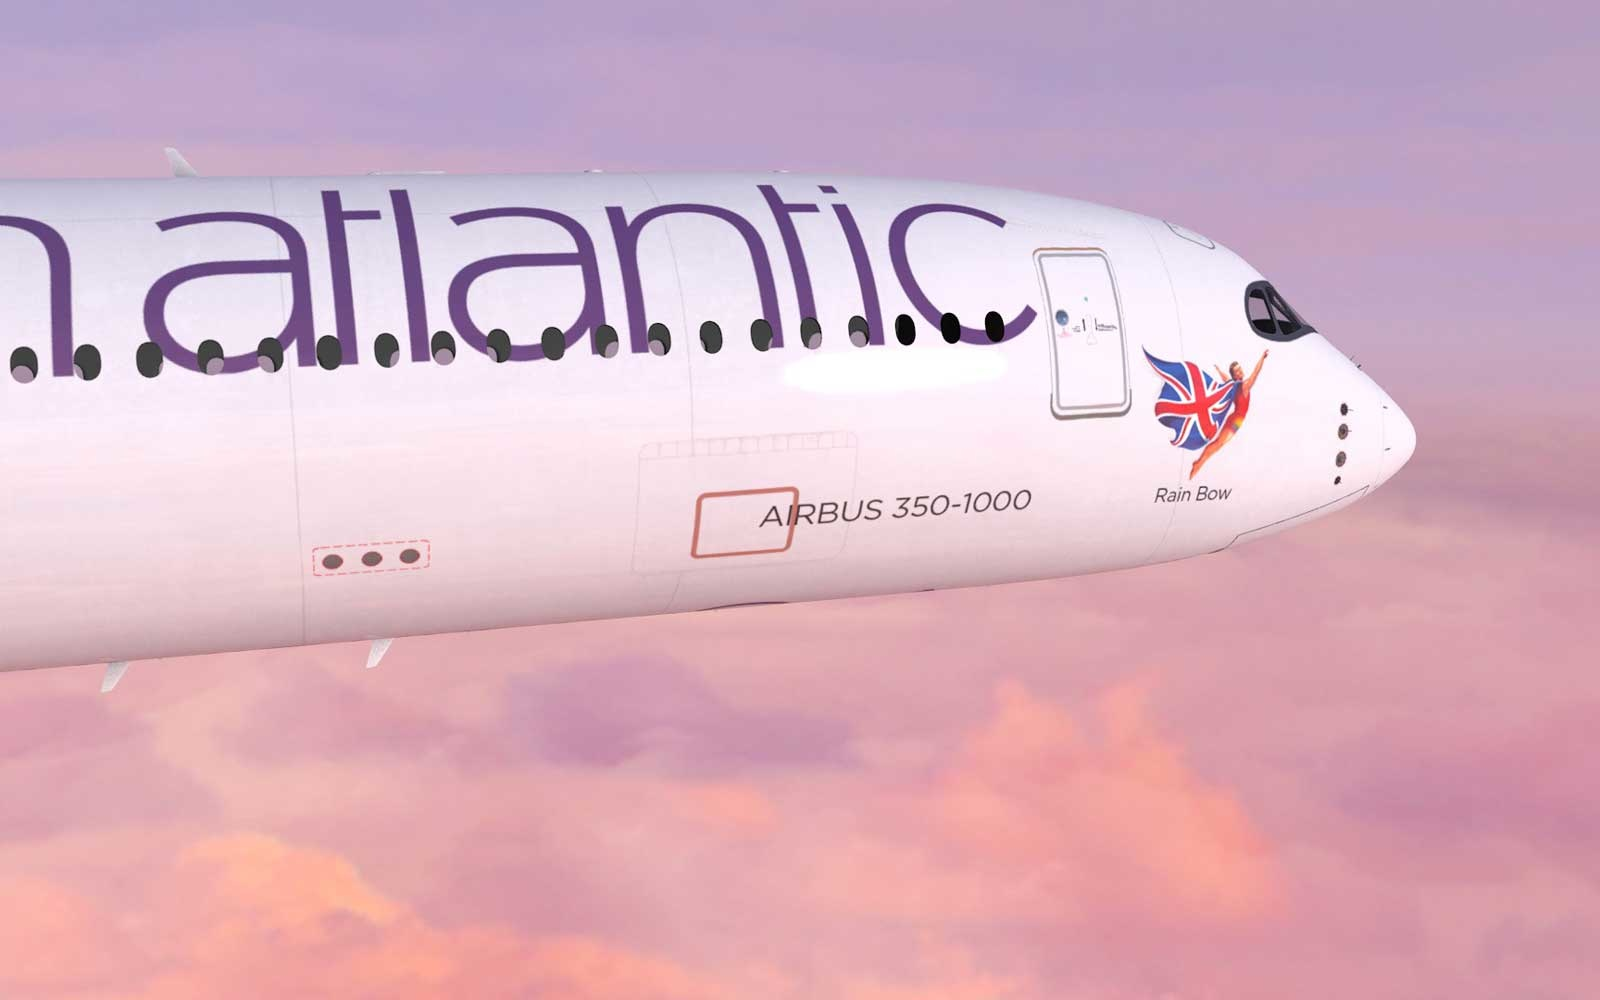 New Flying Icons for Virgin Atlantic